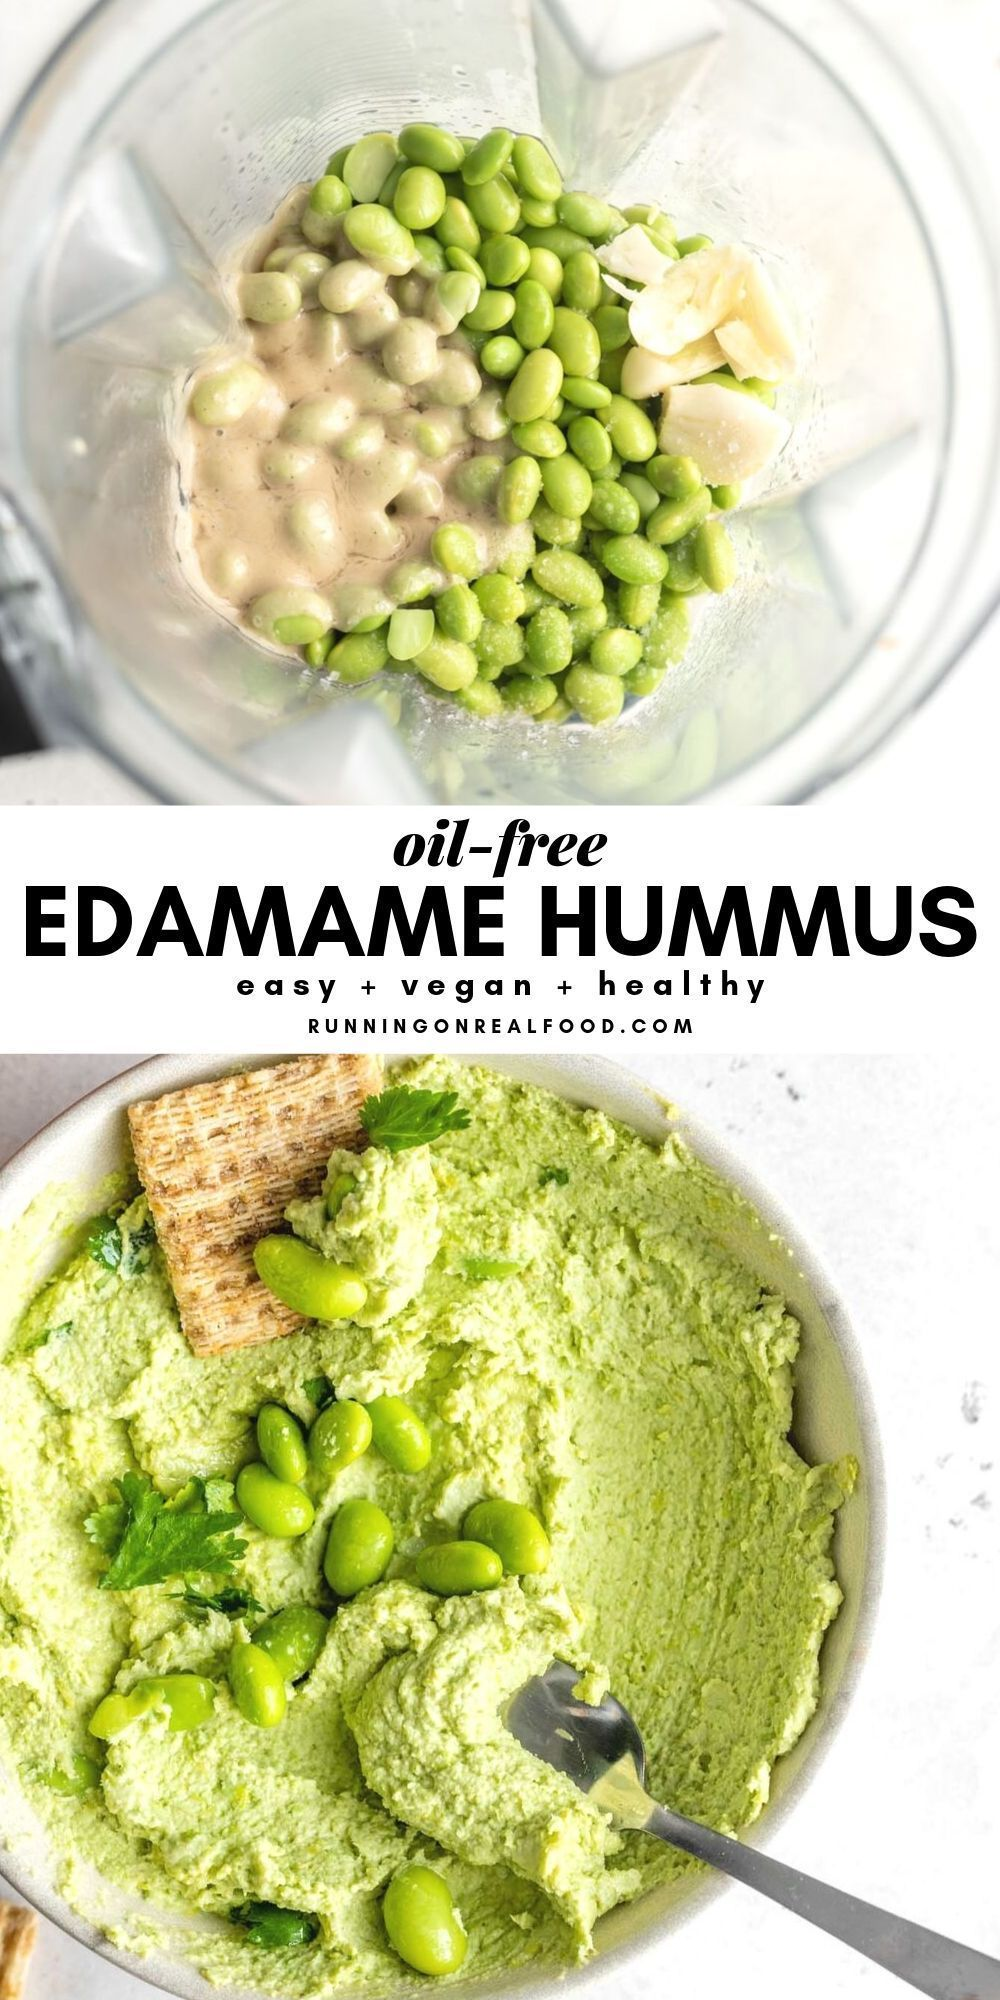 #edamame #hummus Edamame Hummus        An easy, vegan, oil-free edamame hummus recipe that's high in protein, low in fat and perfect as a healthy dip or spread. #christmasicingrecipe